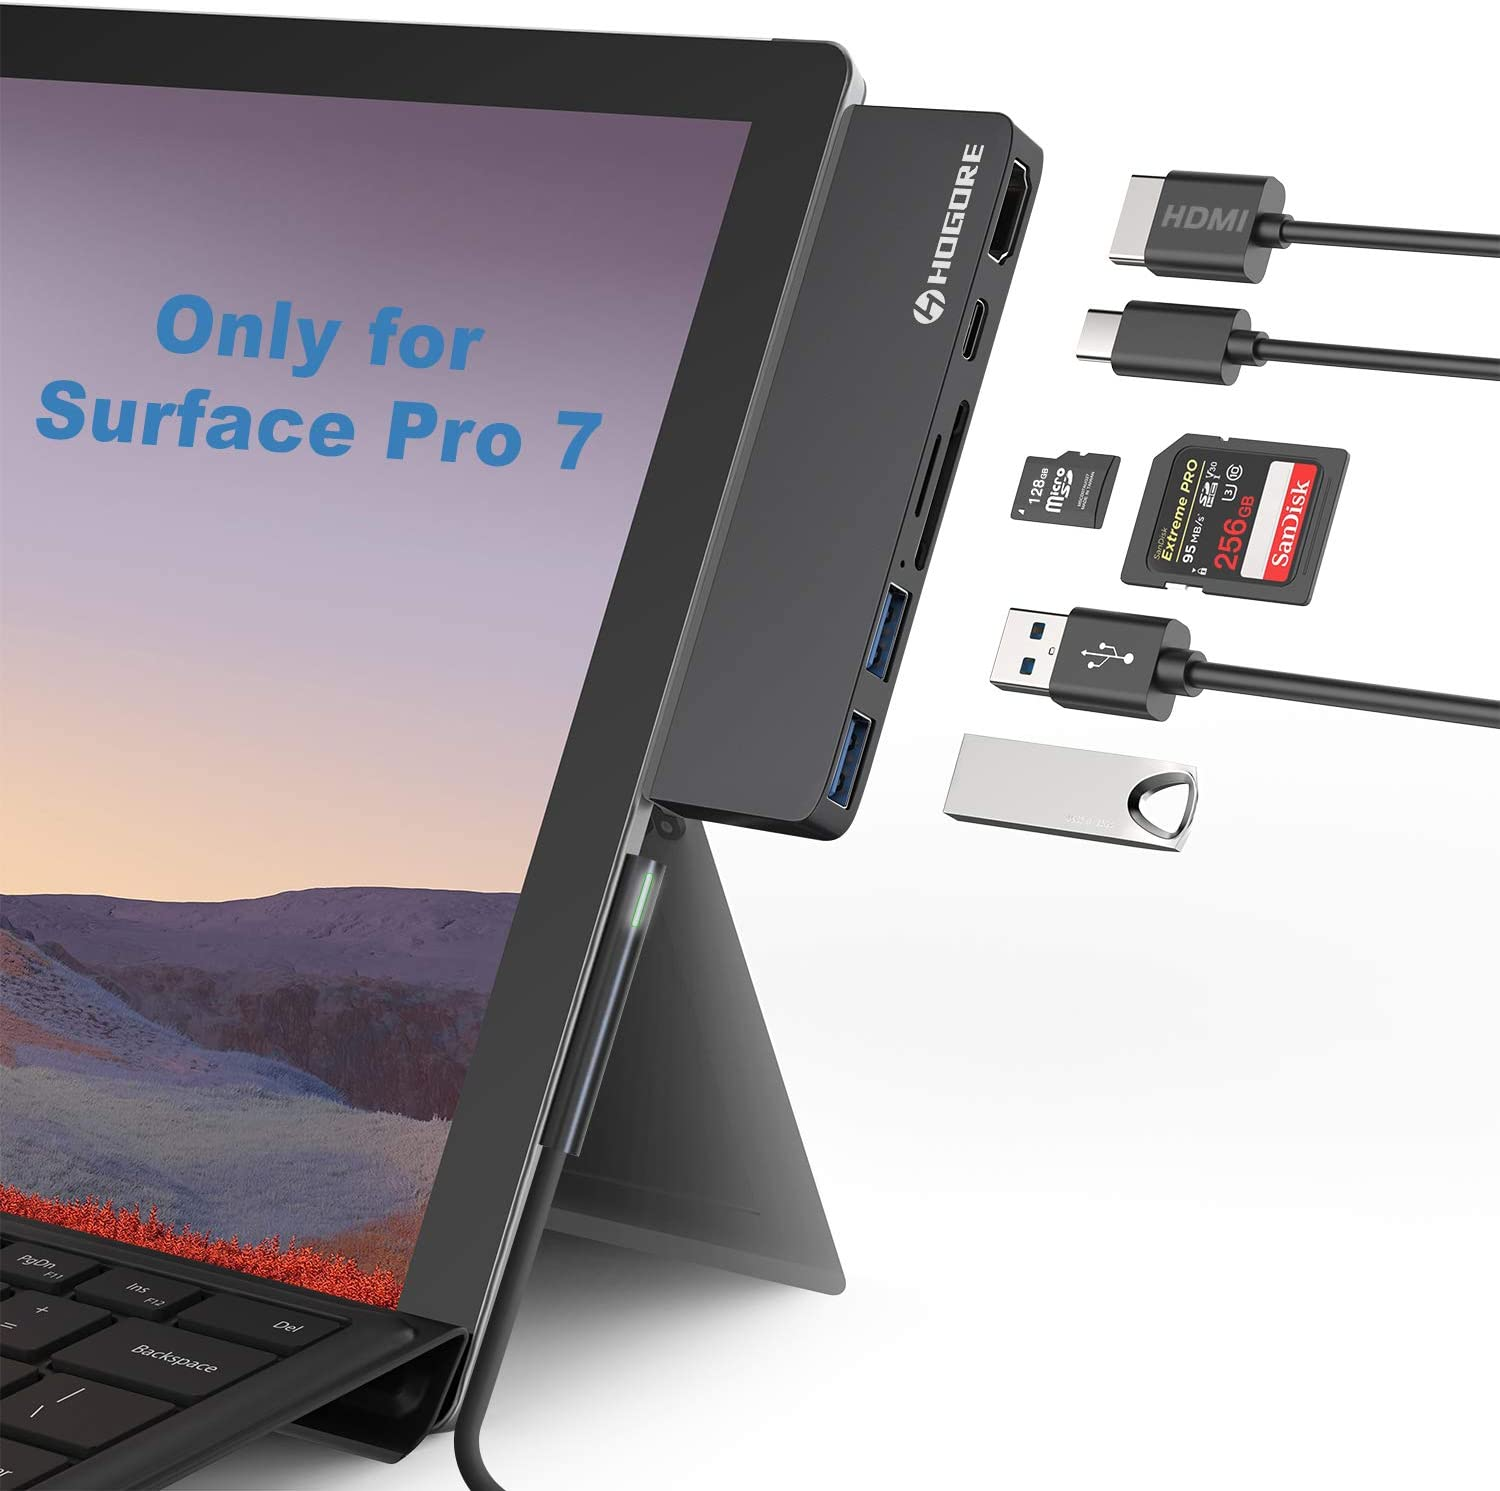 Surface Pro 7 Dock, HOGORE 6-in-2 Surface Pro 7 USB C Hub Adapter with 4K HDMI, USB C PD charging, 2USB3.0,SD/MicroSD Card Reader, Microsoft Surface Pro 7 Accessories, MS Surface Pro 7 Docking Station